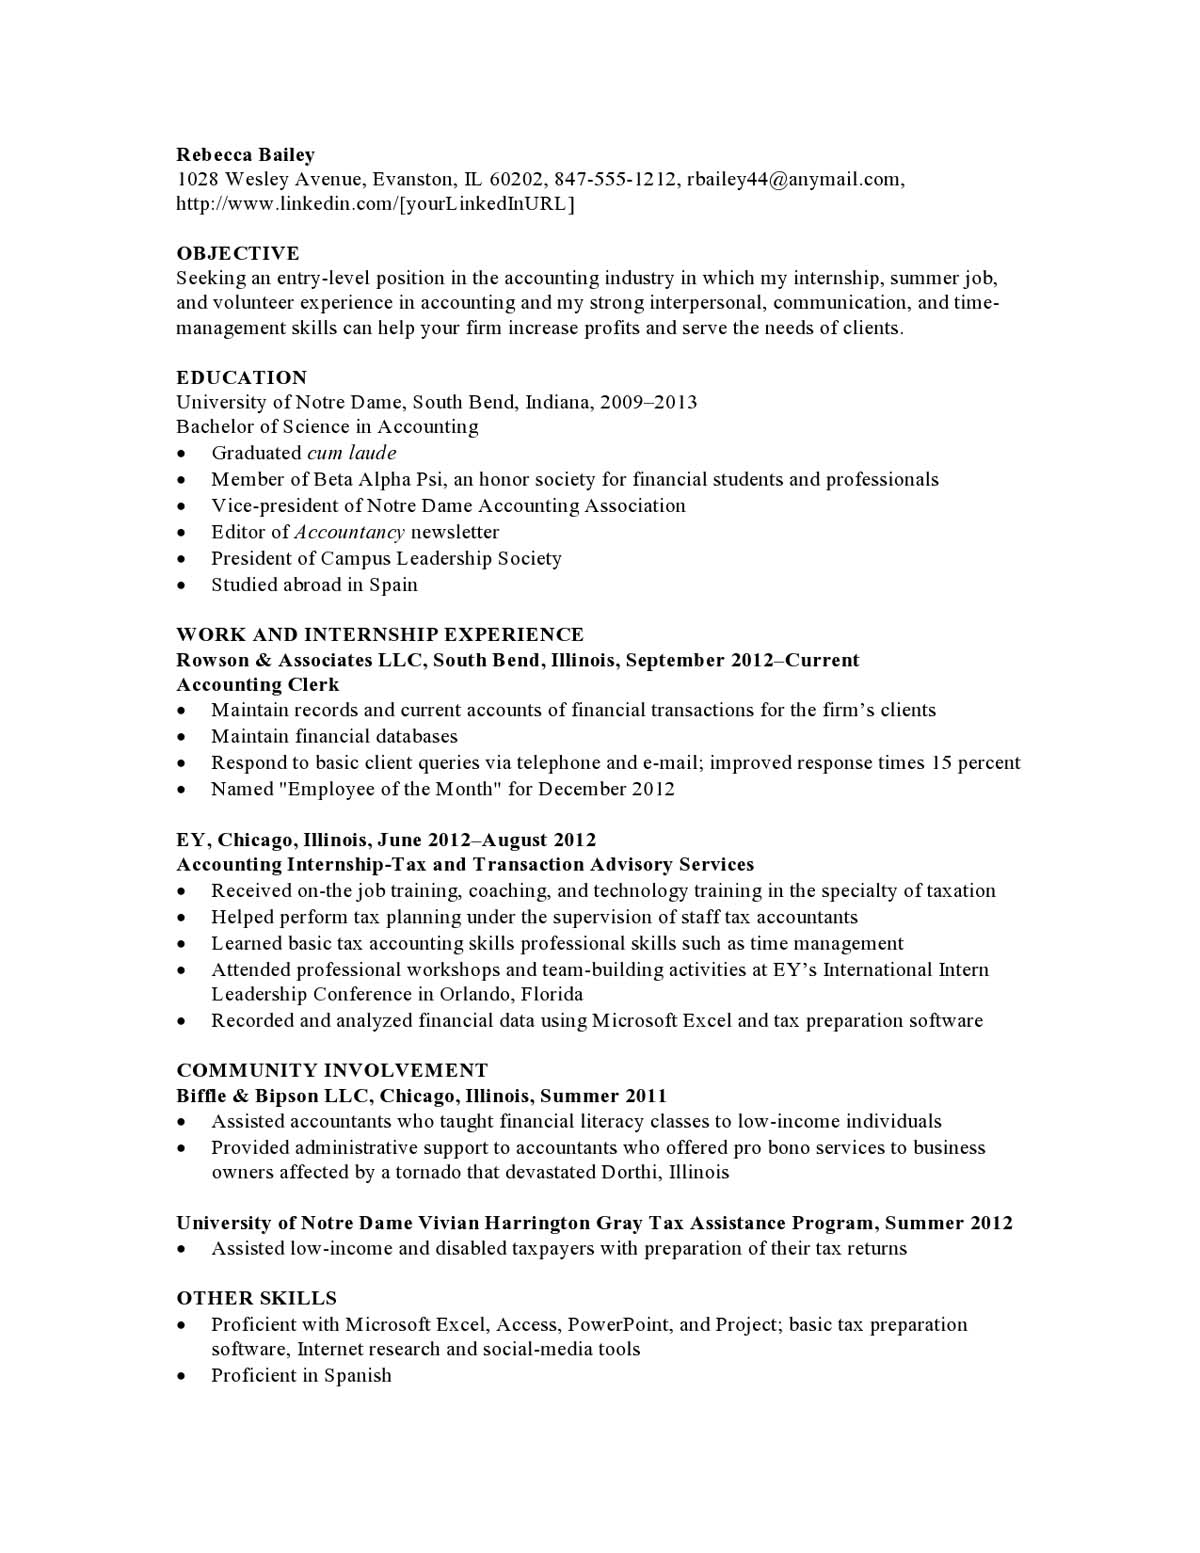 resume samples templates examples vault human services template crescoact19 punctual and Resume Human Services Resume Template